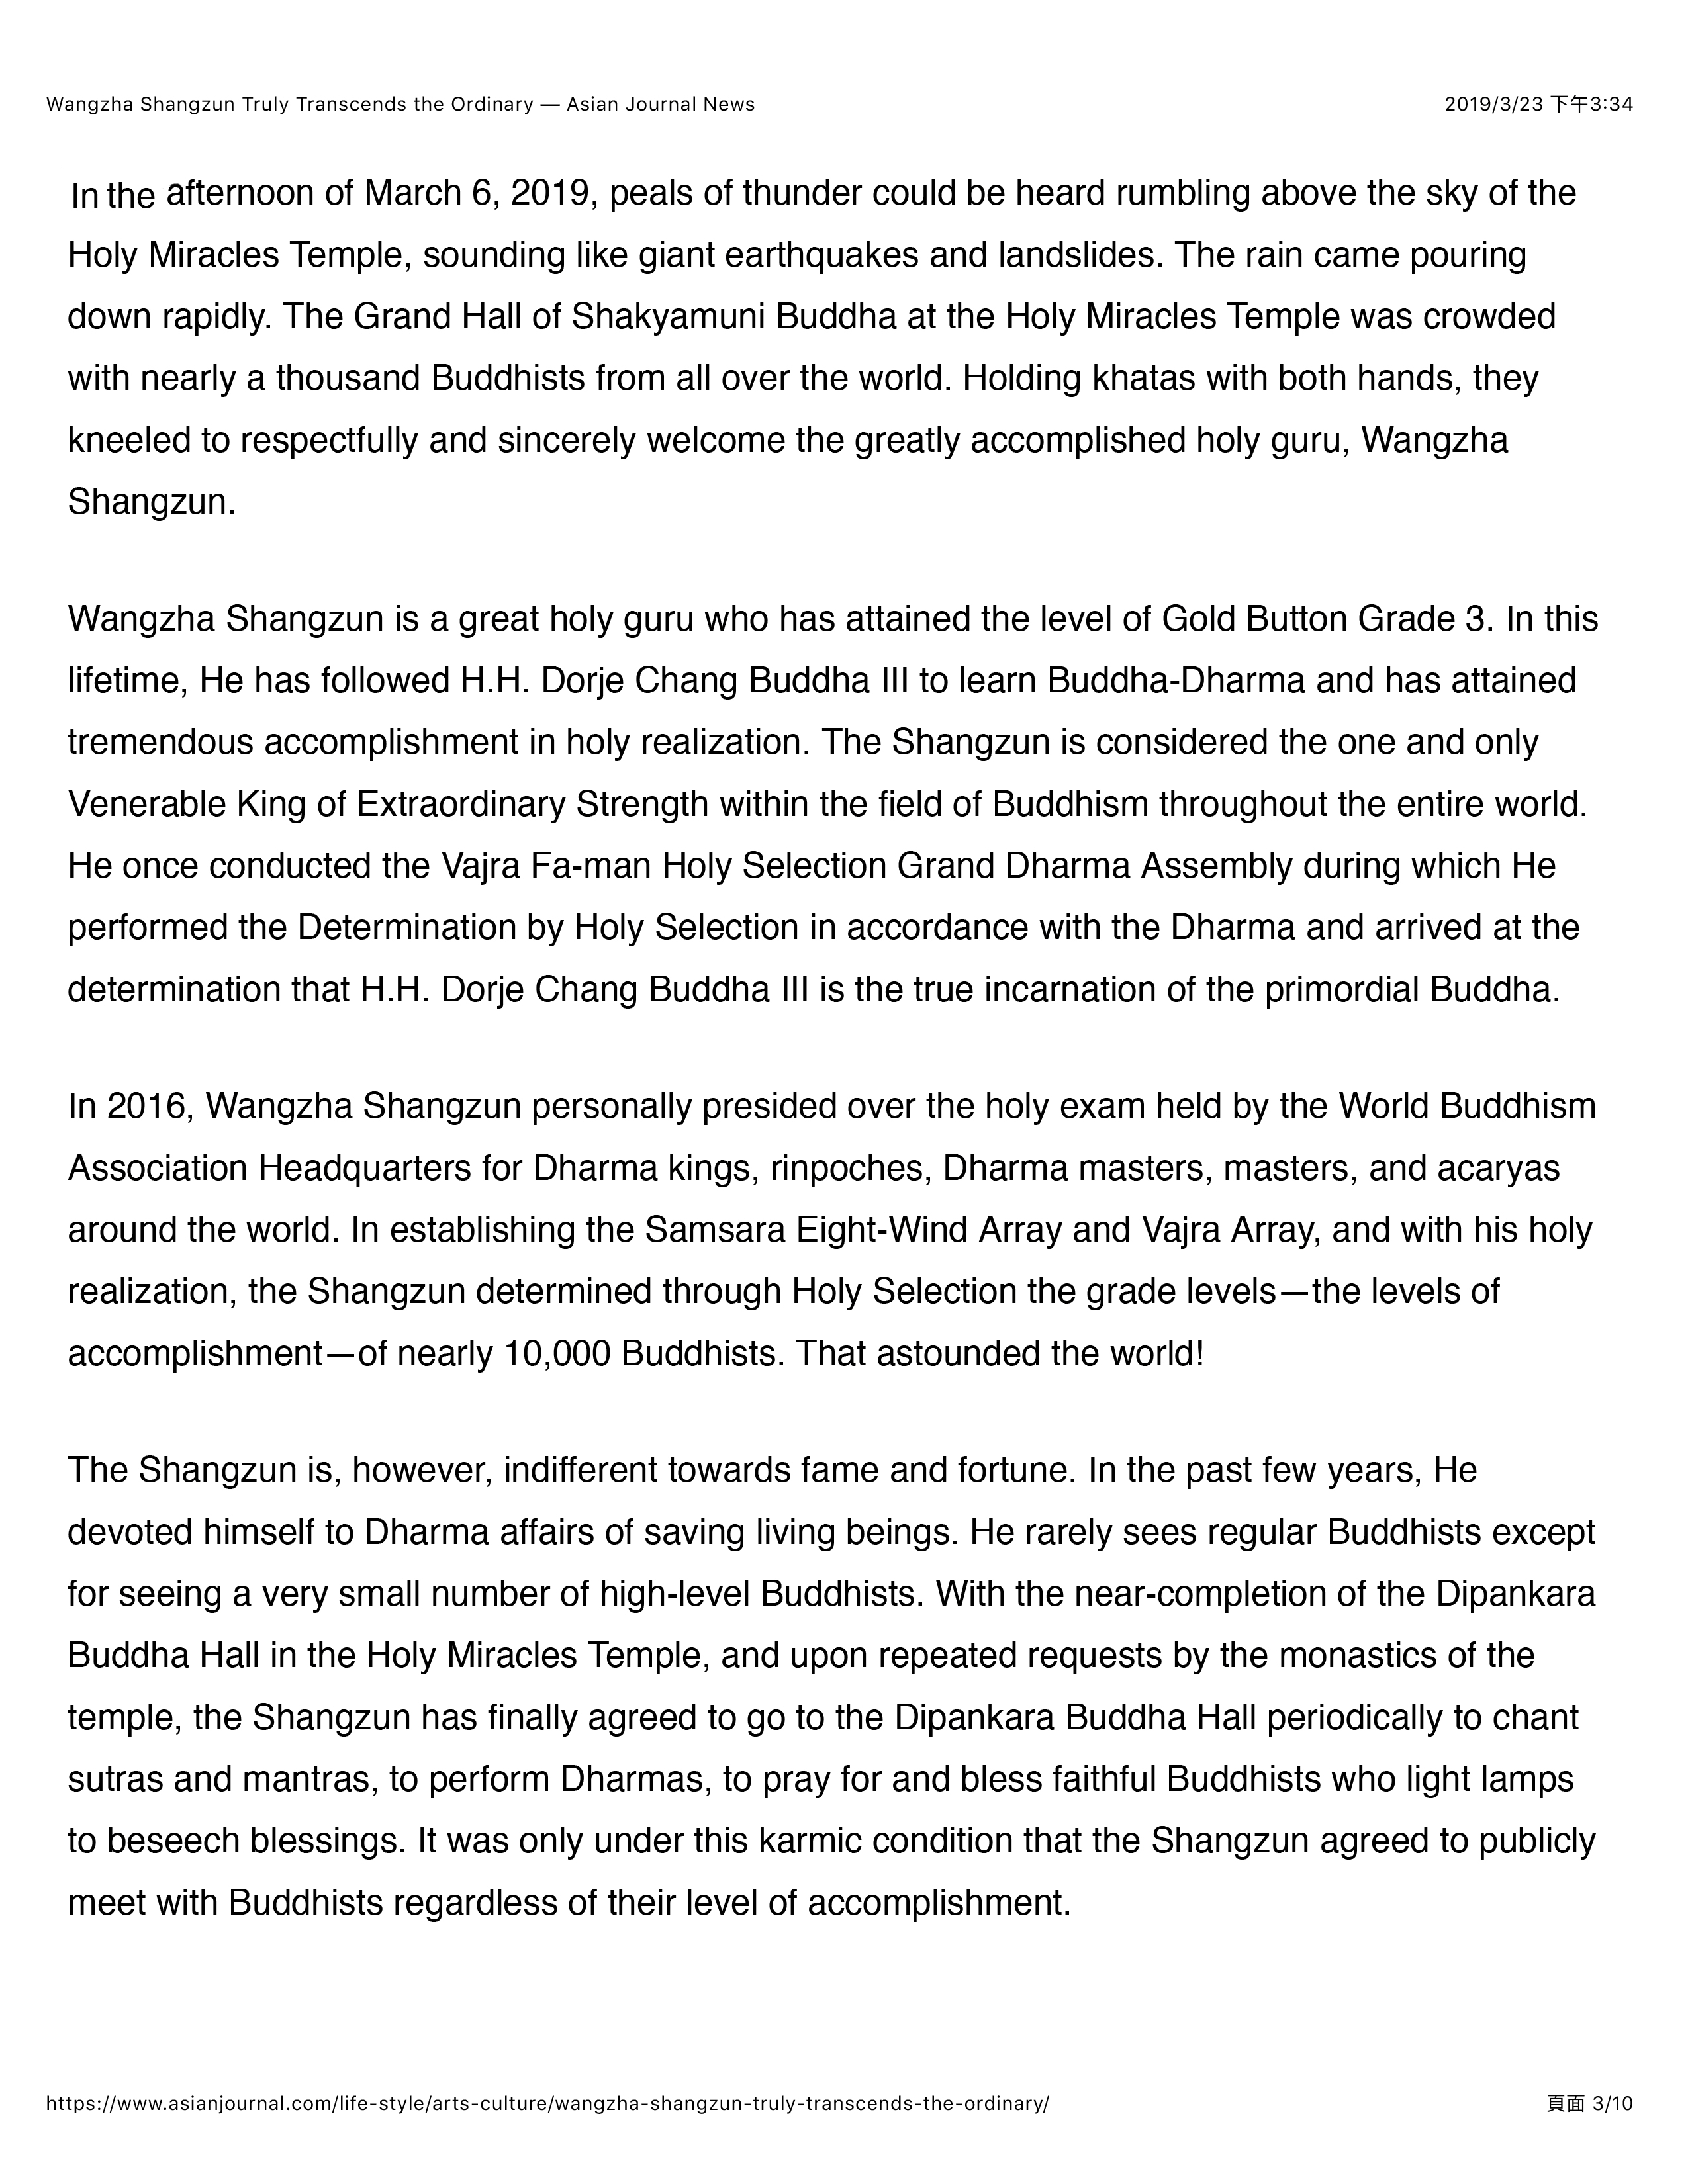 2 Wangzha Shangzun Truly Transcends the Ordinary PDF